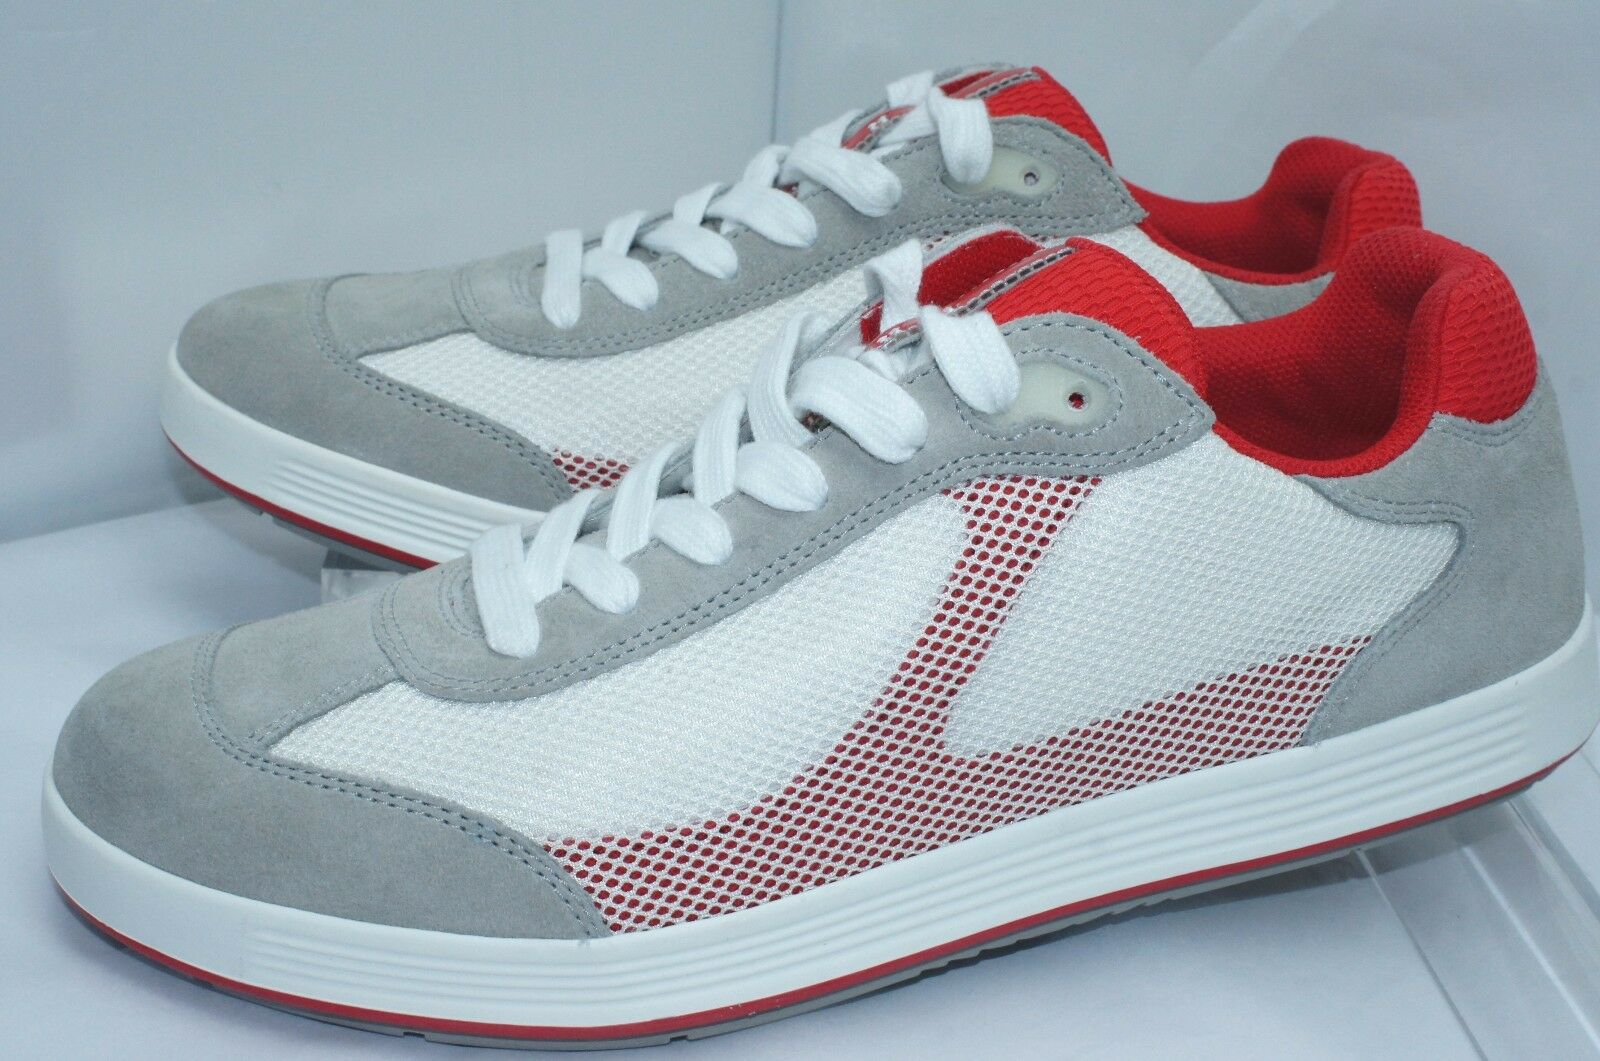 New Prada Men's Shoes White Sneakers Tennis Size 9 Red